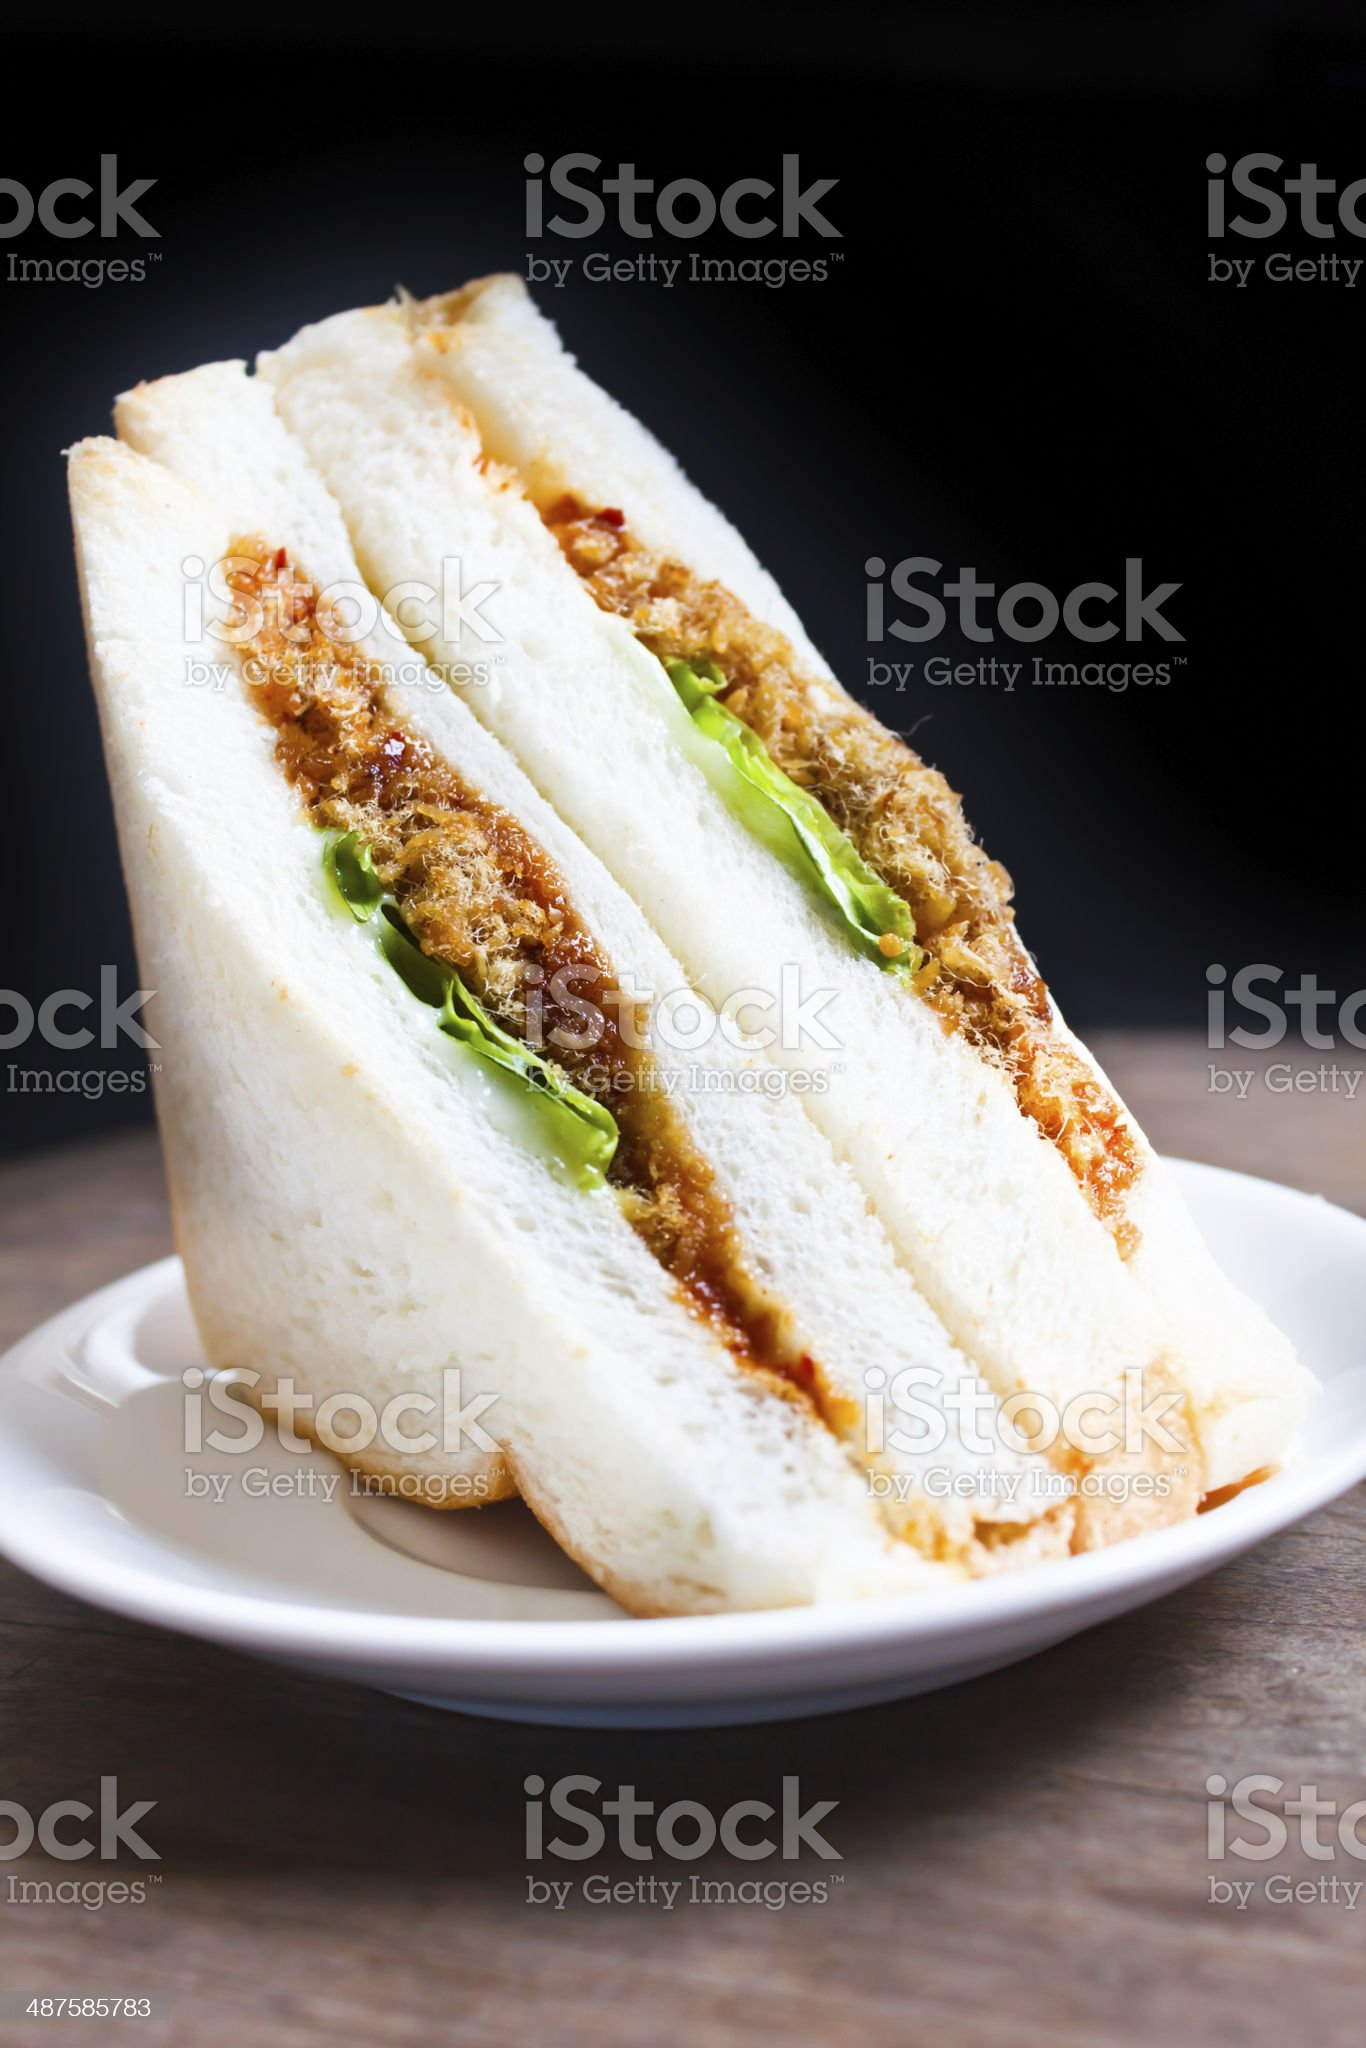 Sandwich with shredded pork and chili paste. royalty-free stock photo